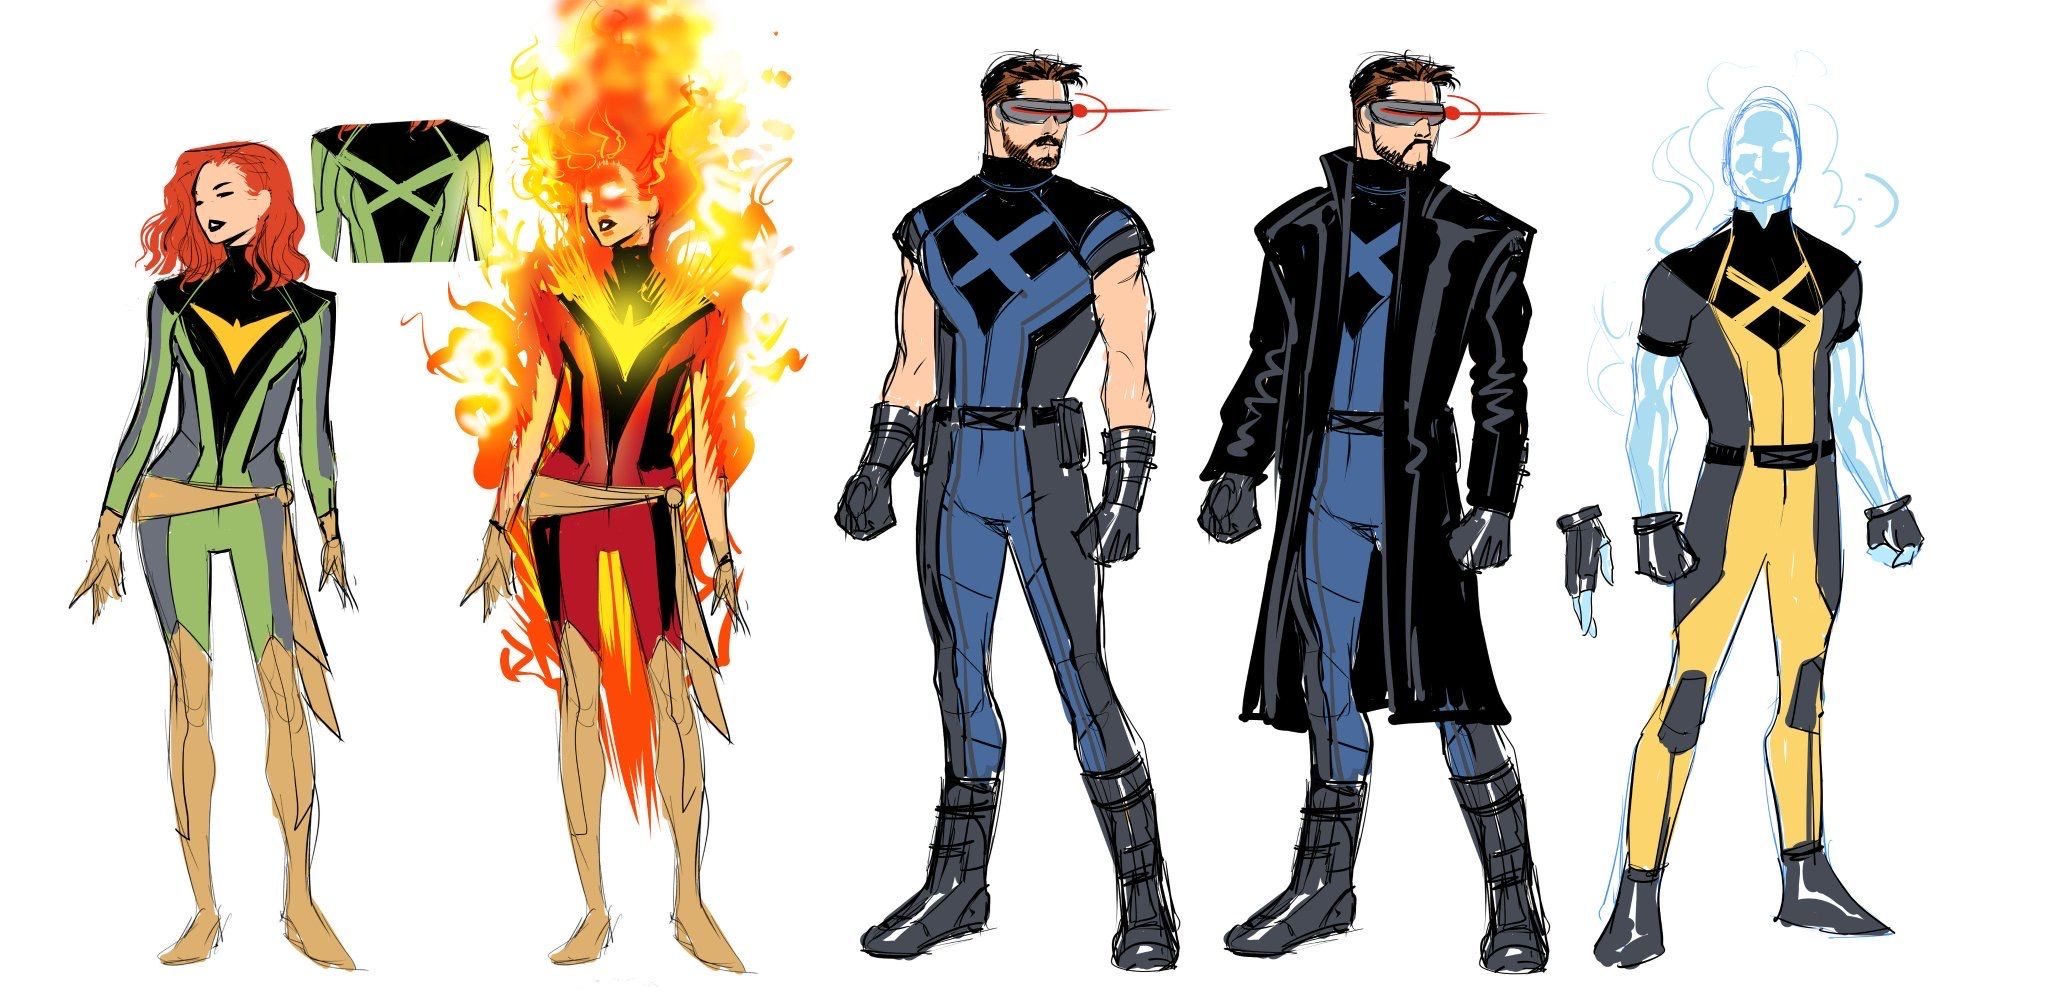 Pin By Aaron Rivin On Cyclops X Men Costumes Marvel Character Design Comic Company